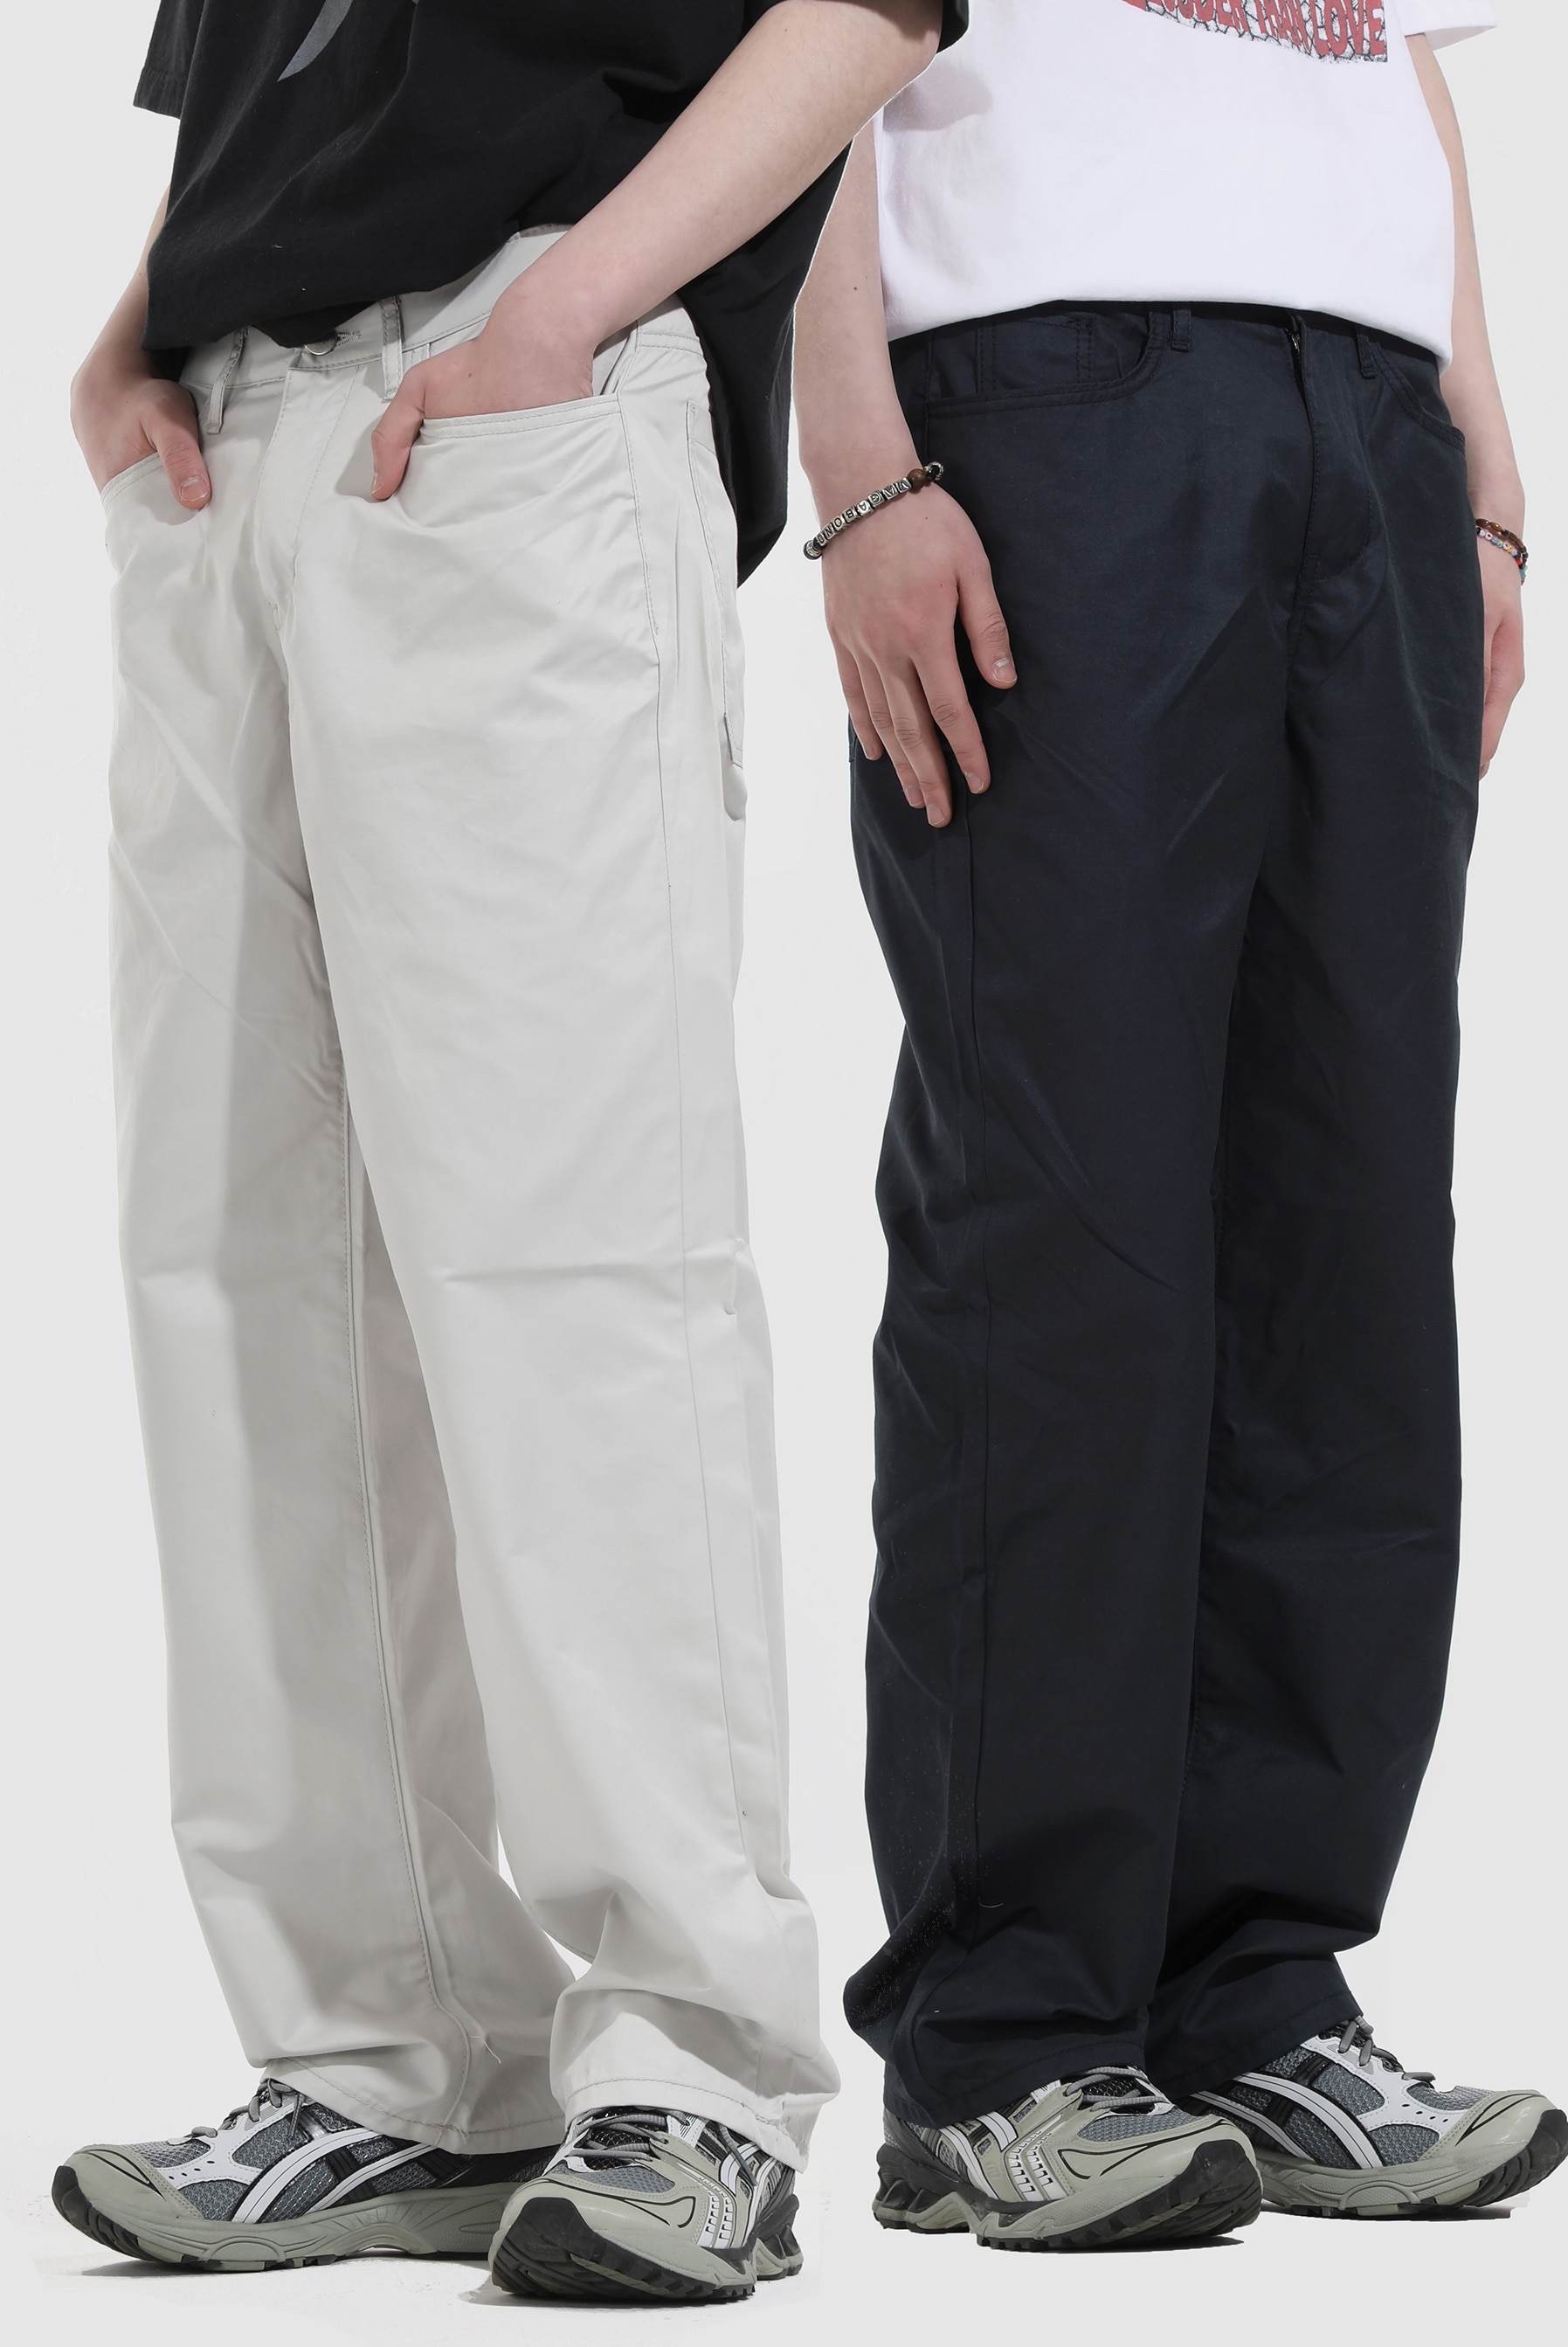 High_Density_Cotton_Pants